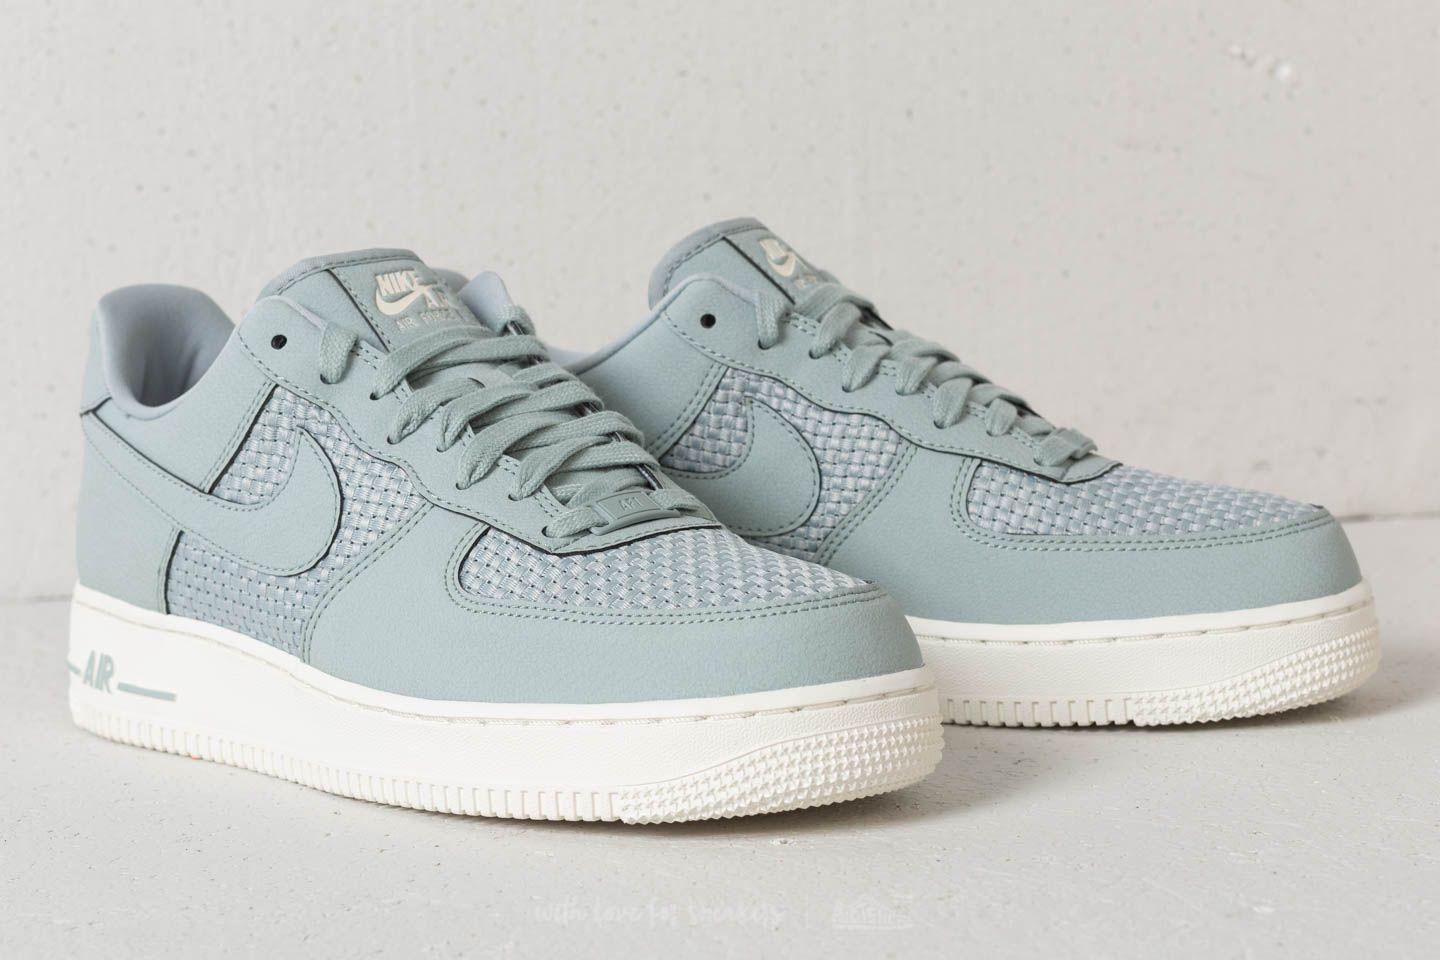 quality design d976a 72558 Nike Air Force 1 Low Light Pumice  Light Pumice-sail for Men - Lyst